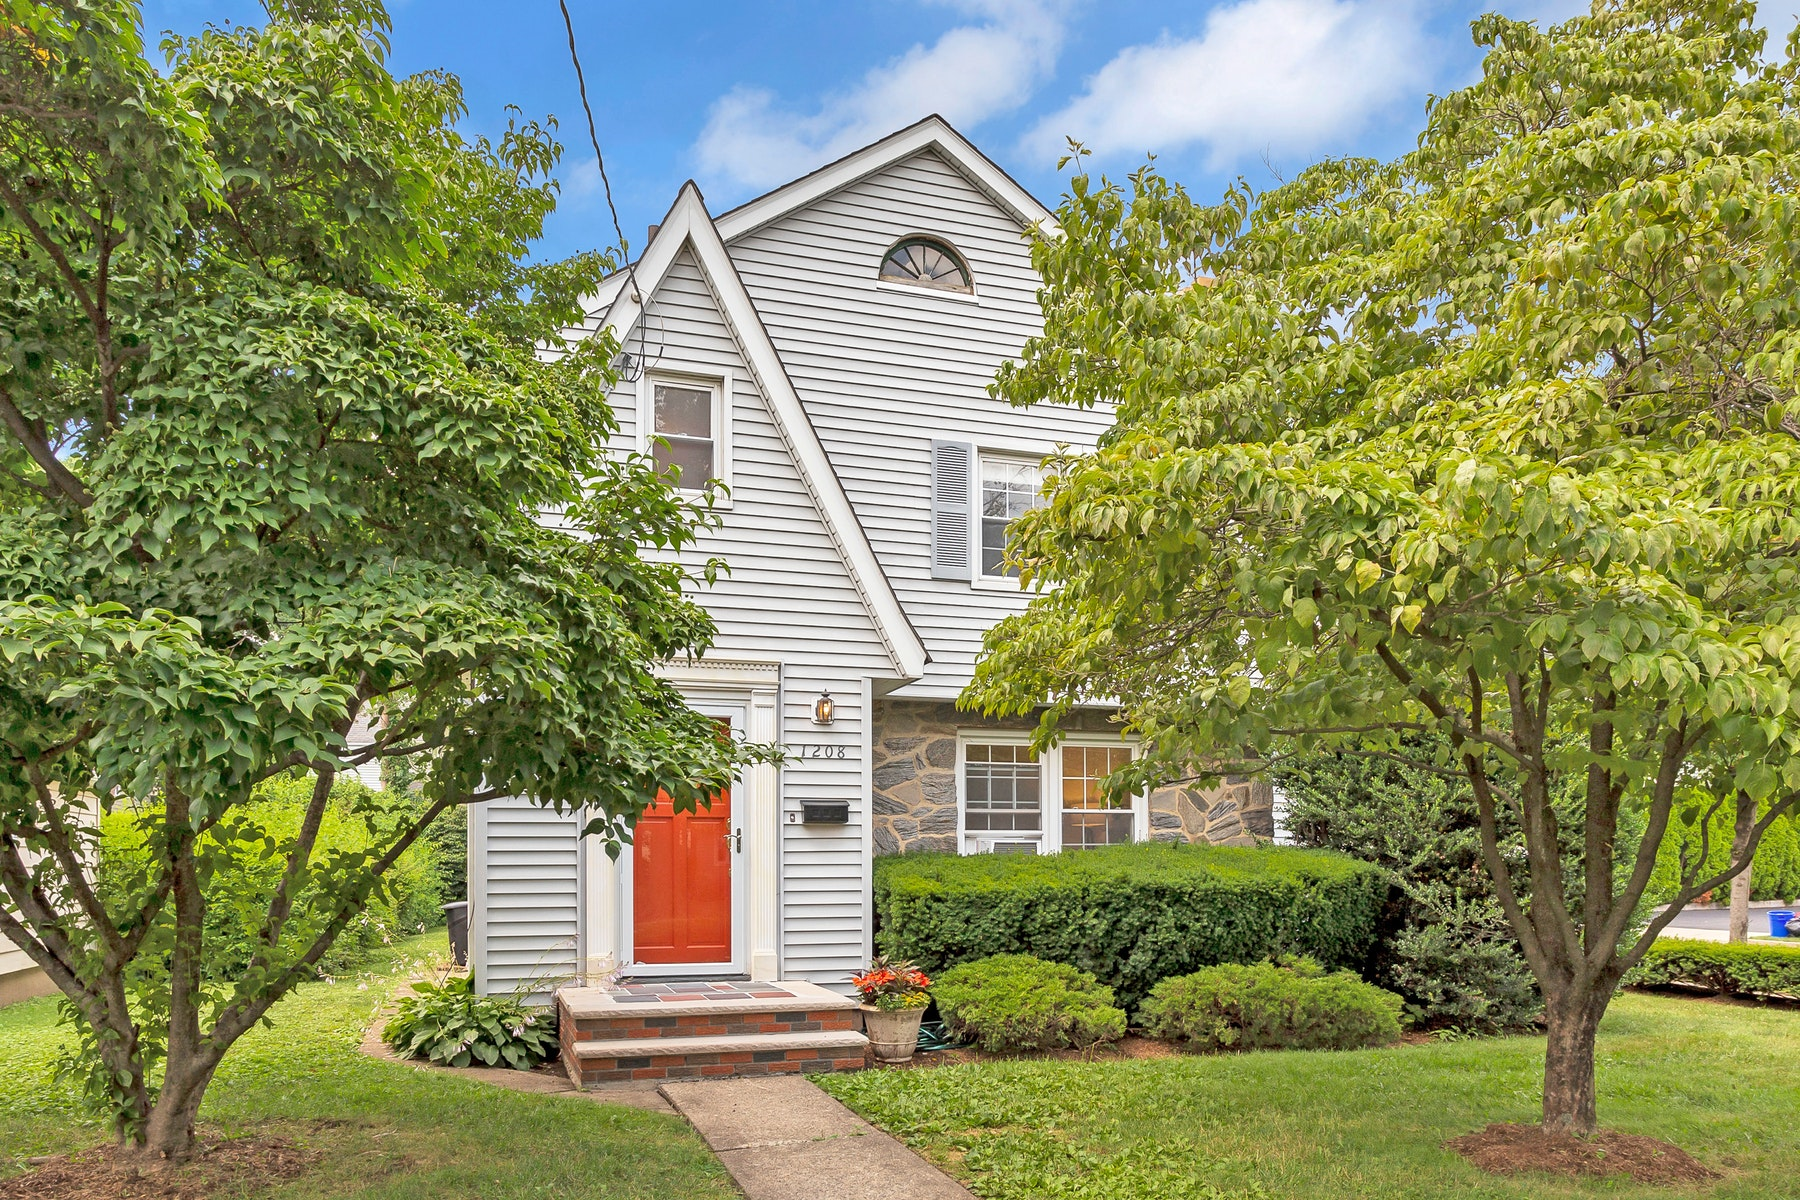 Single Family Homes for Sale at Charming Colonial 1208 Broad Street Bloomfield, New Jersey 07003 United States